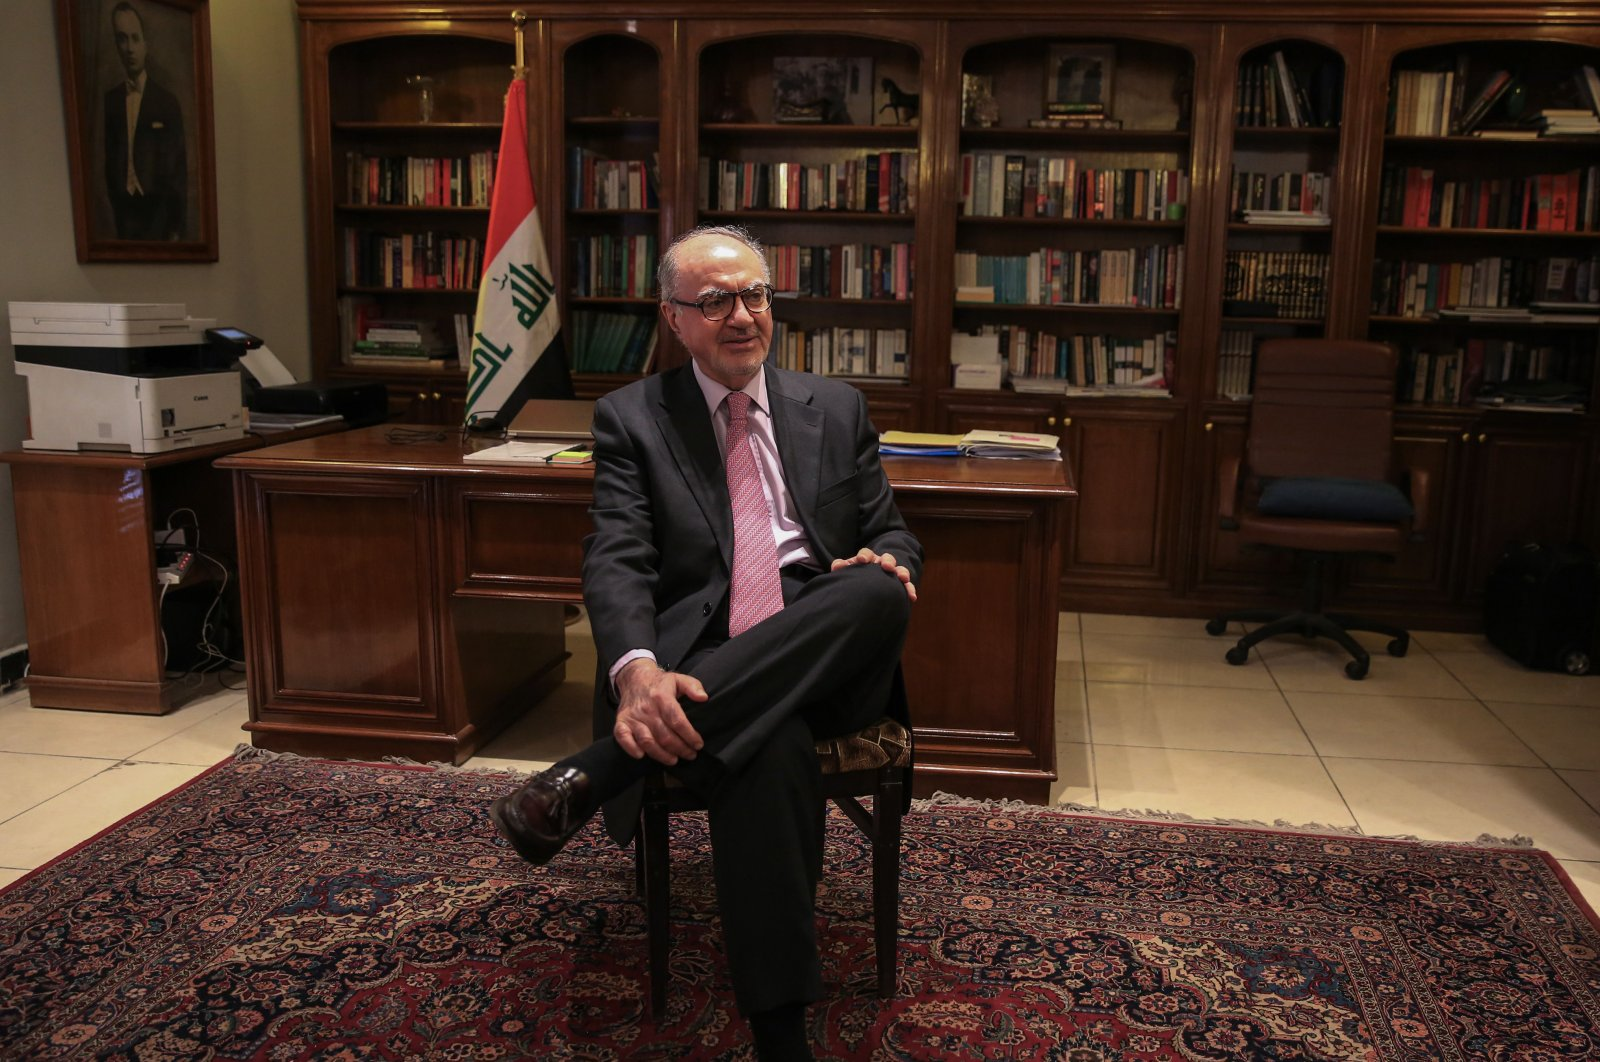 Iraq's Minister of Finance Ali Allawi speaks during an interview at his residence in the capital Baghdad, June 22, 2020. (AFP Photo)